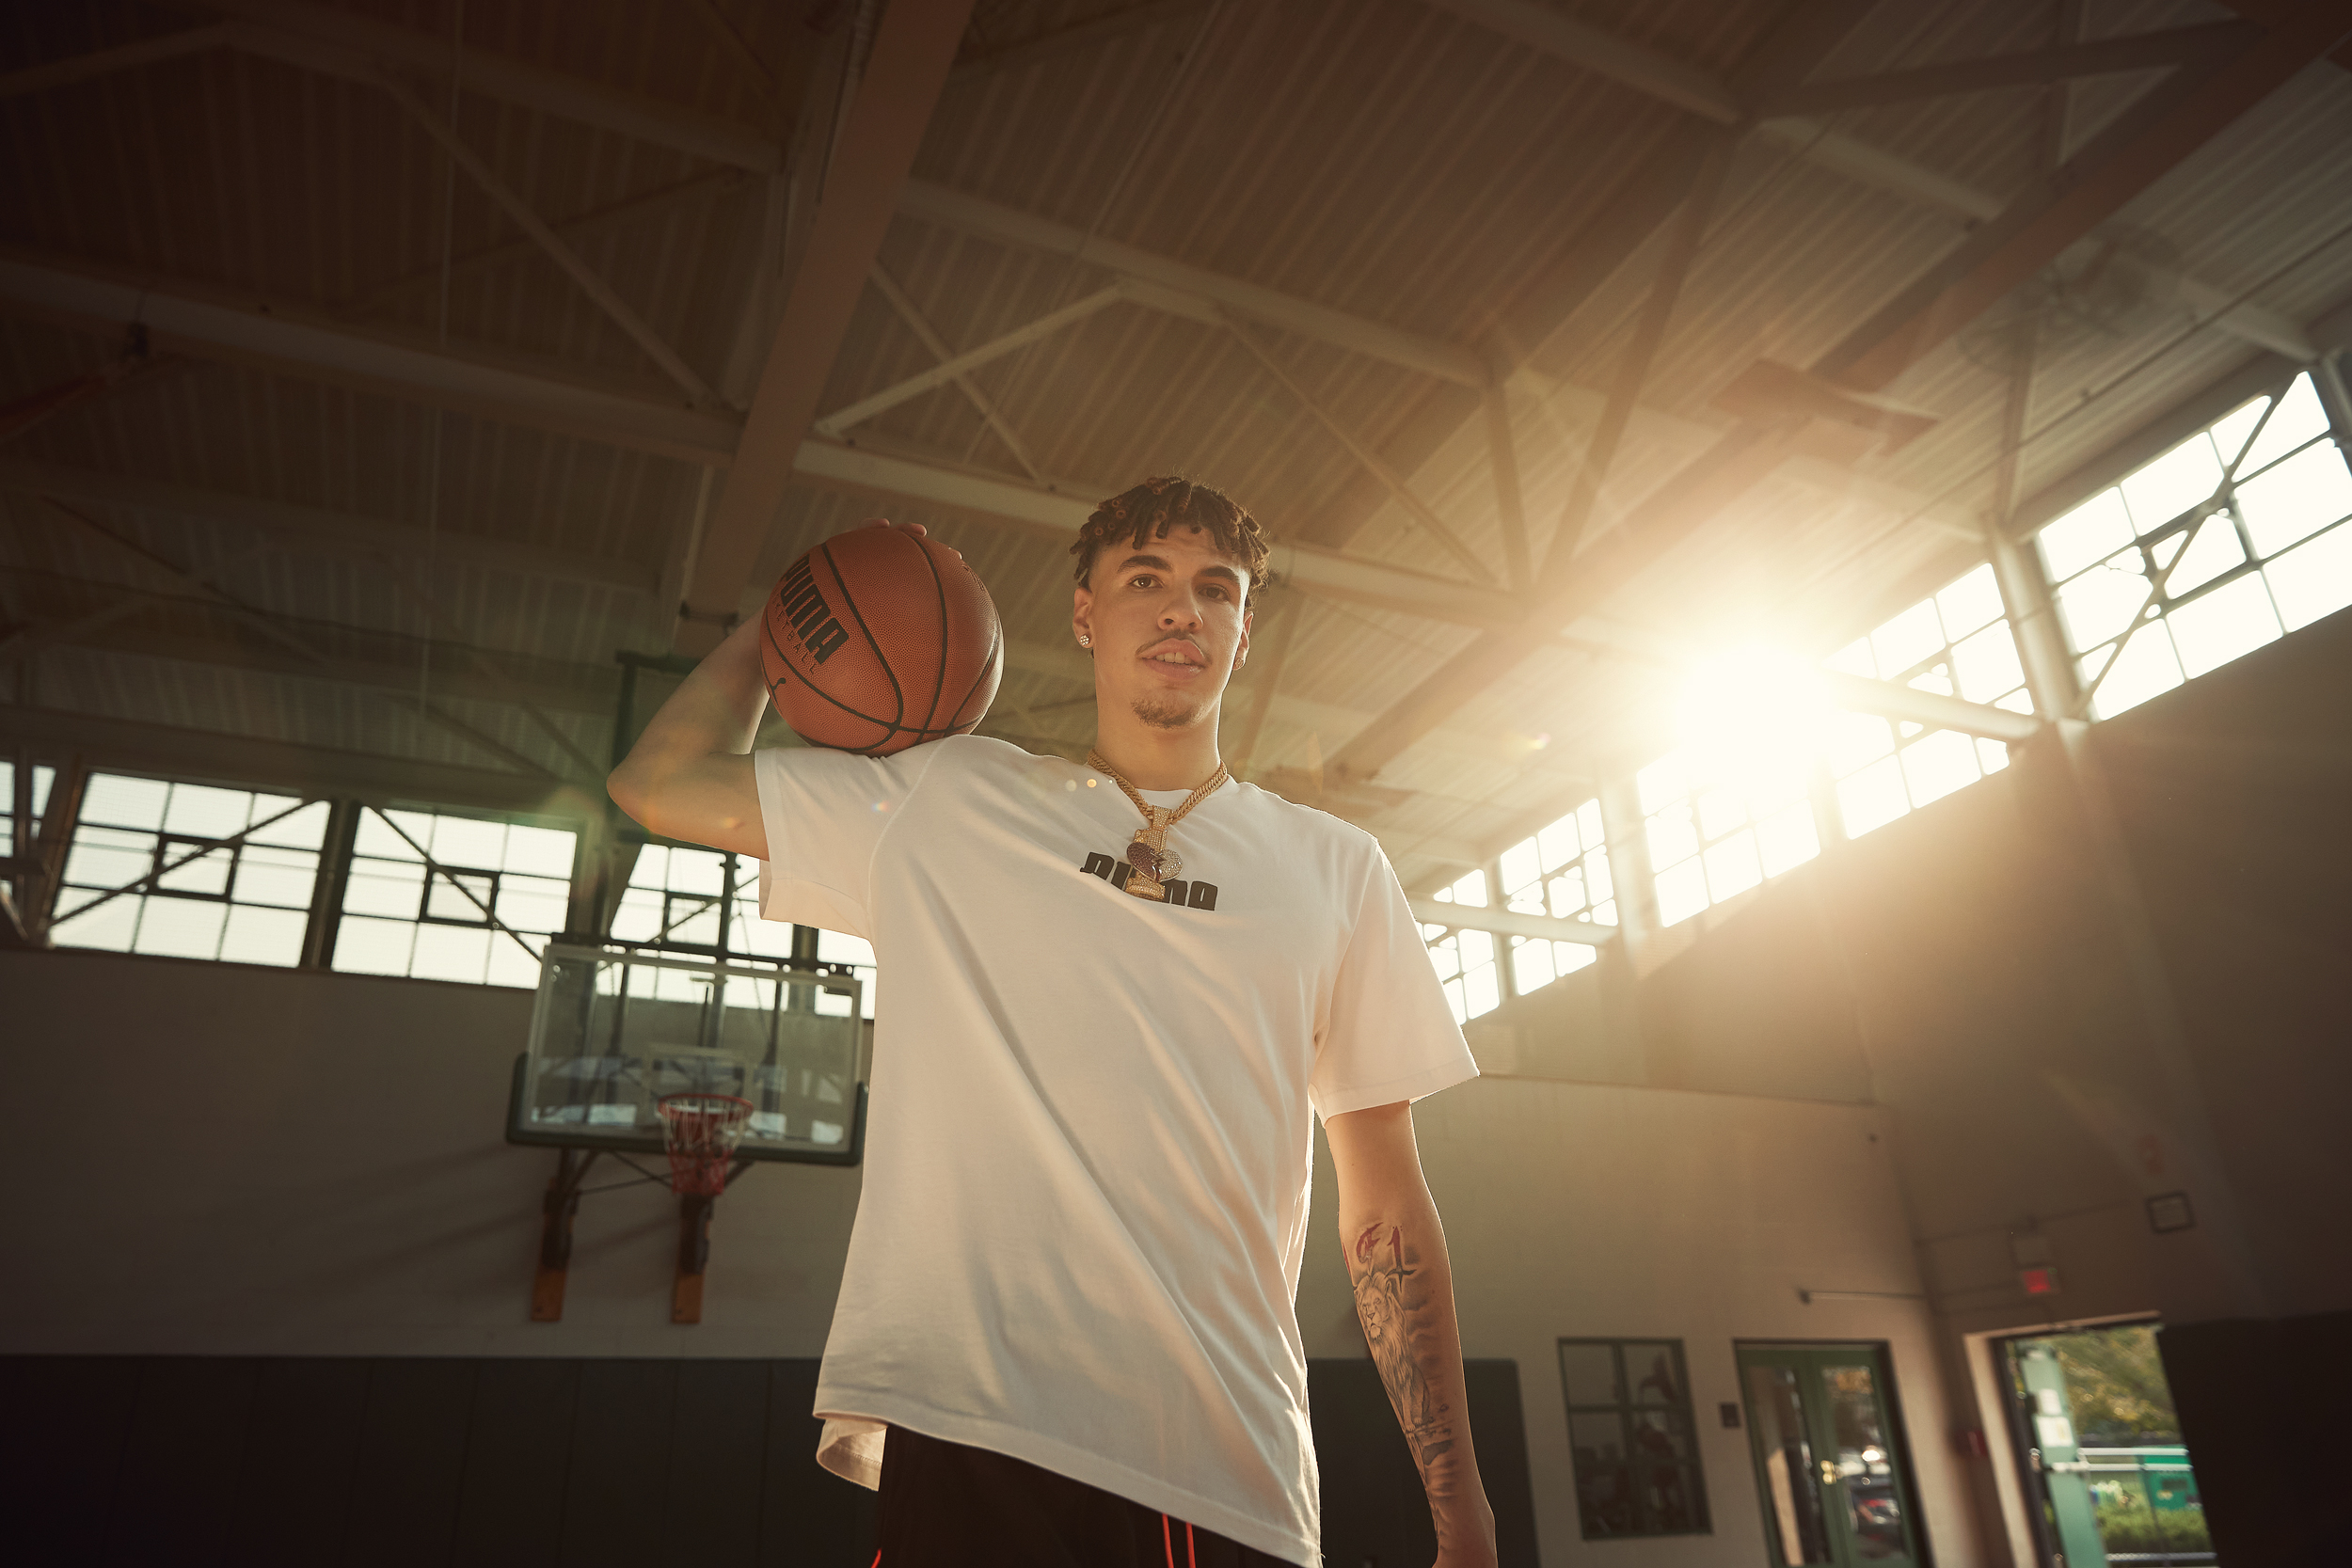 20AW_xBB_LaMelo-Ball_All-Pro_0212